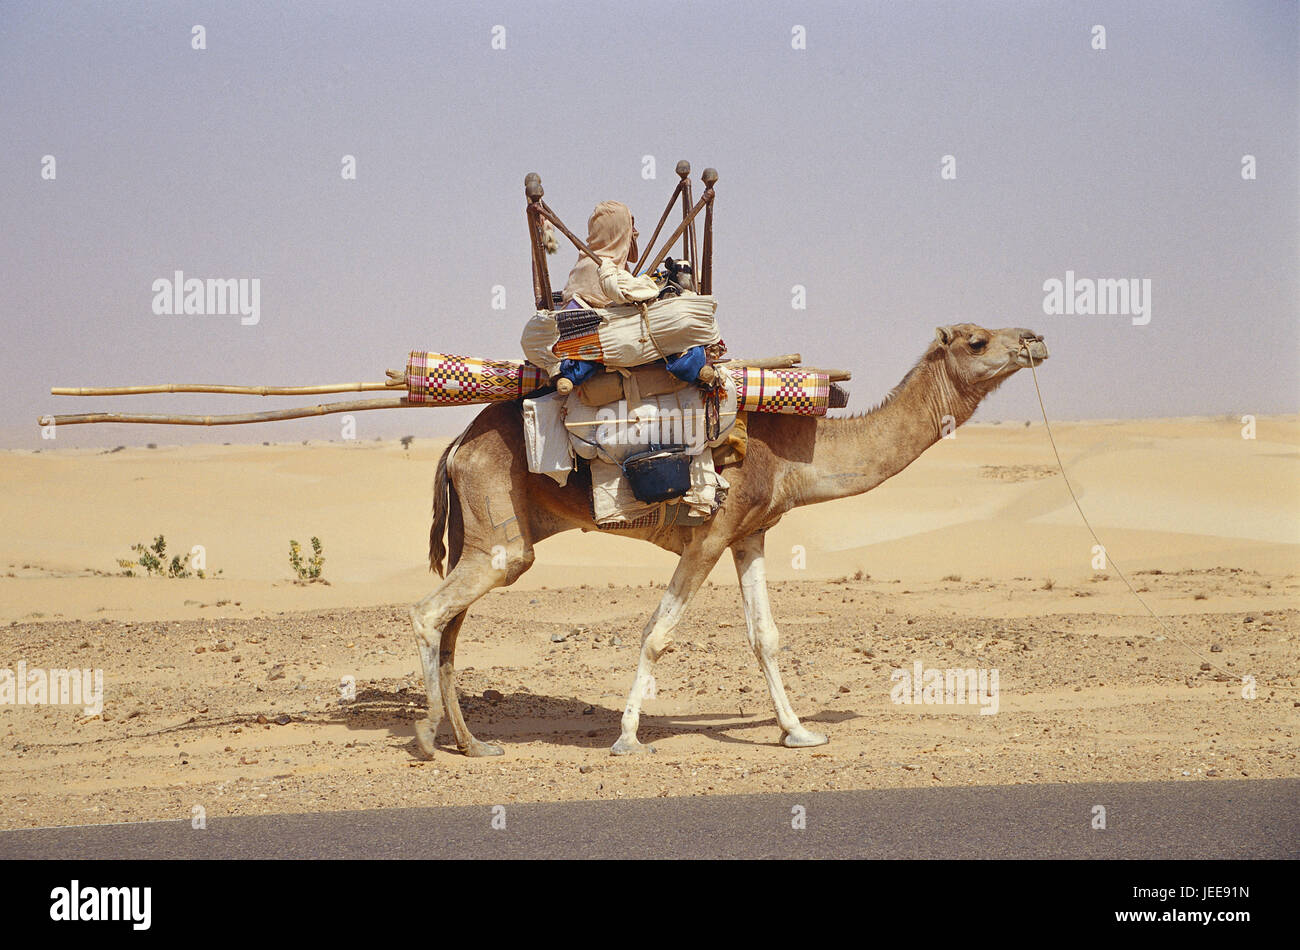 Mauritania, camel, bleed, household, Africa, West Africa, scenery, desert, person, local, Mauritanian, African, - Stock Image